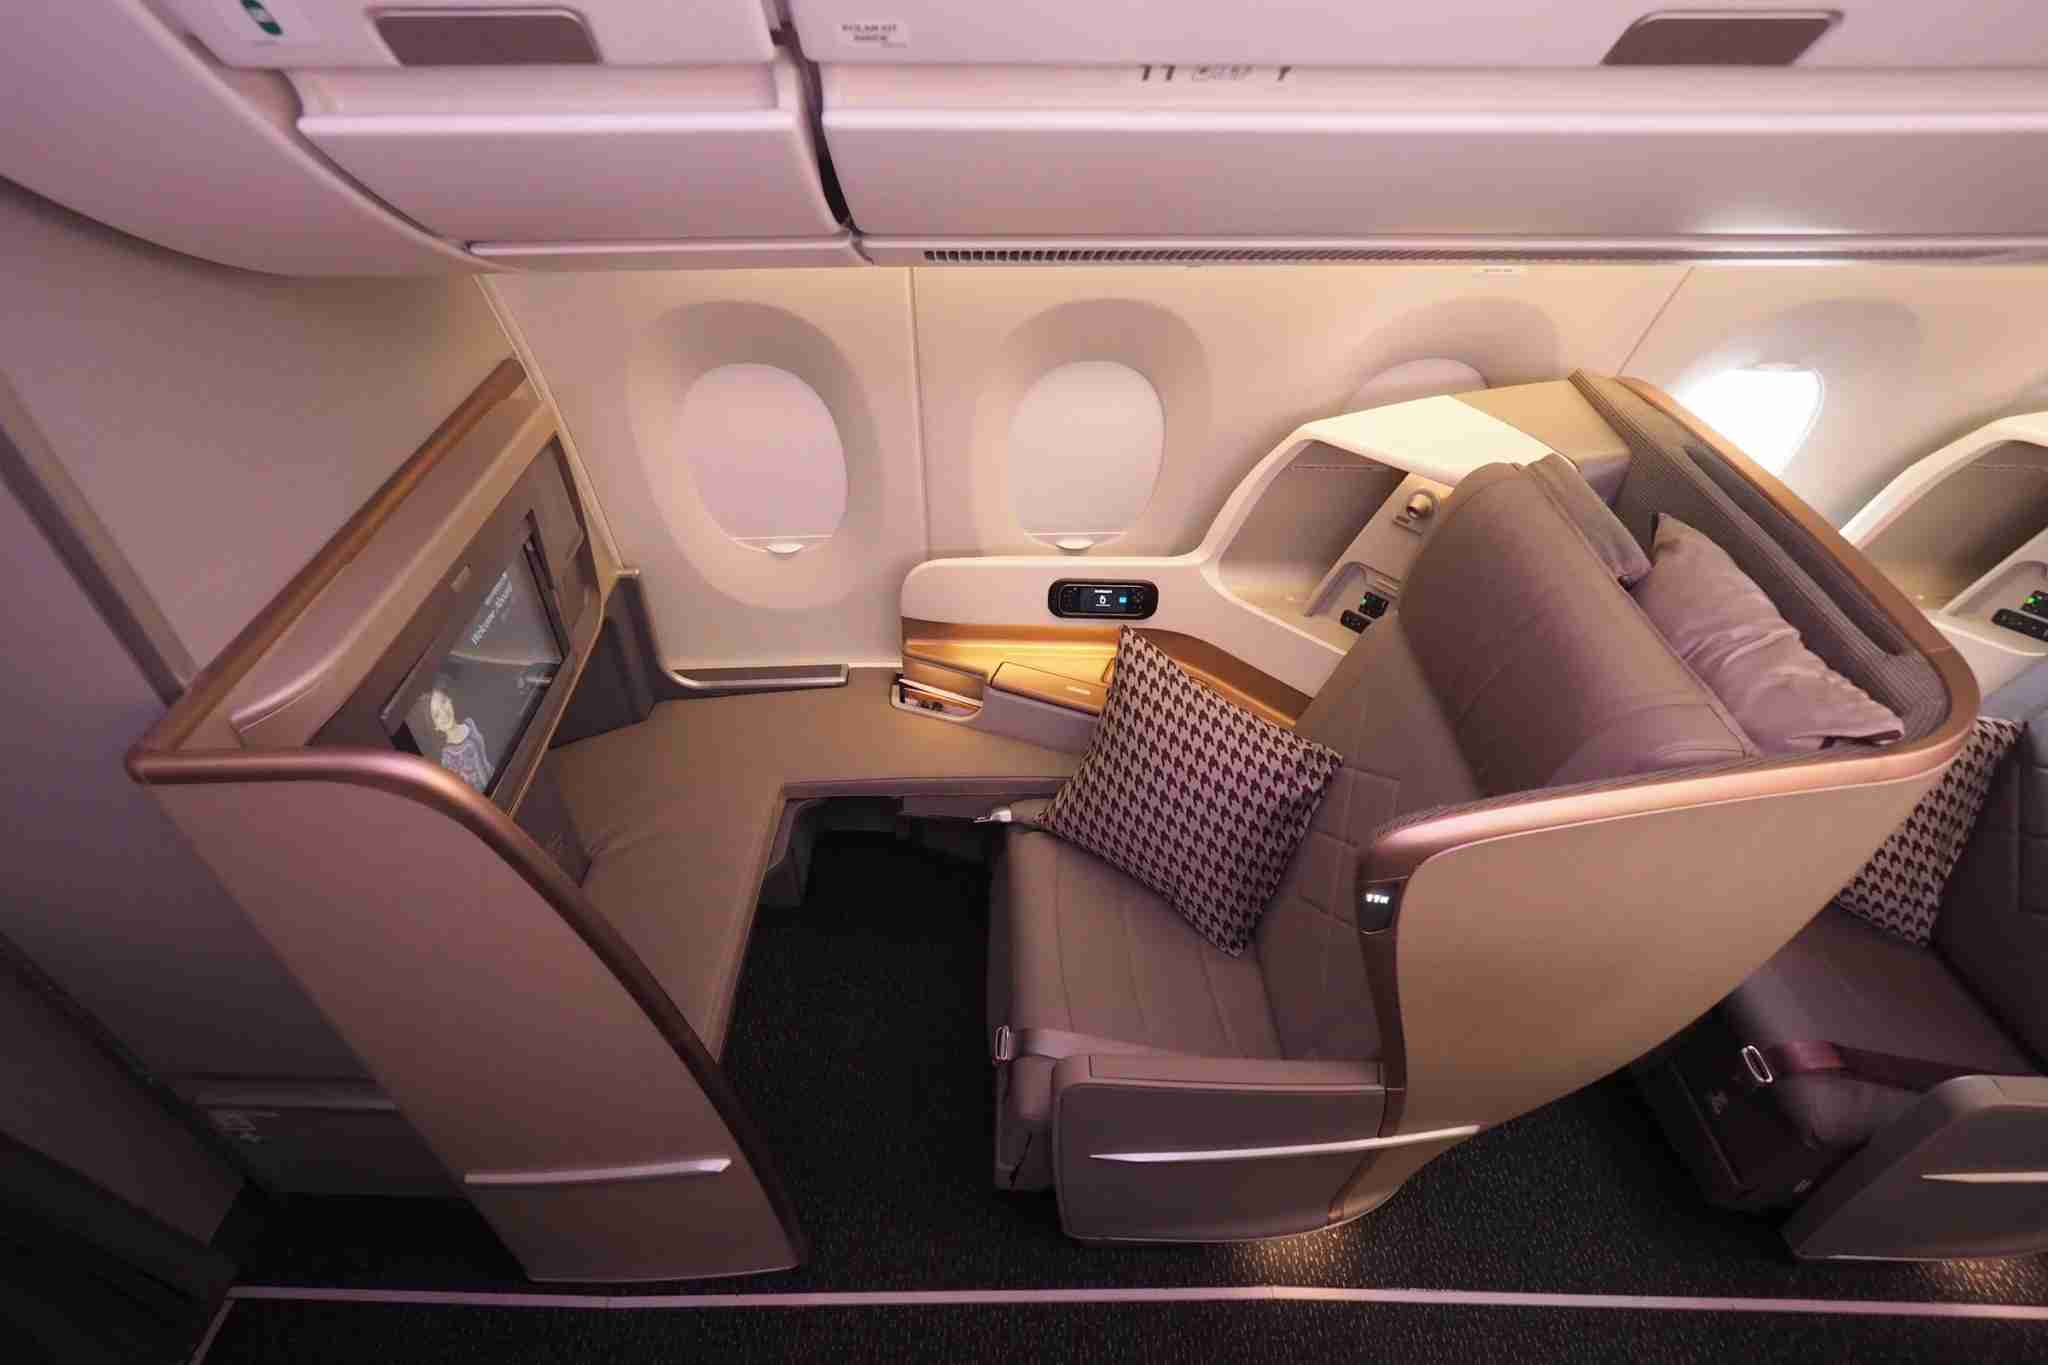 Singapore Airlines A350 Business Class. Photo by Zach Honig / The Points Guy